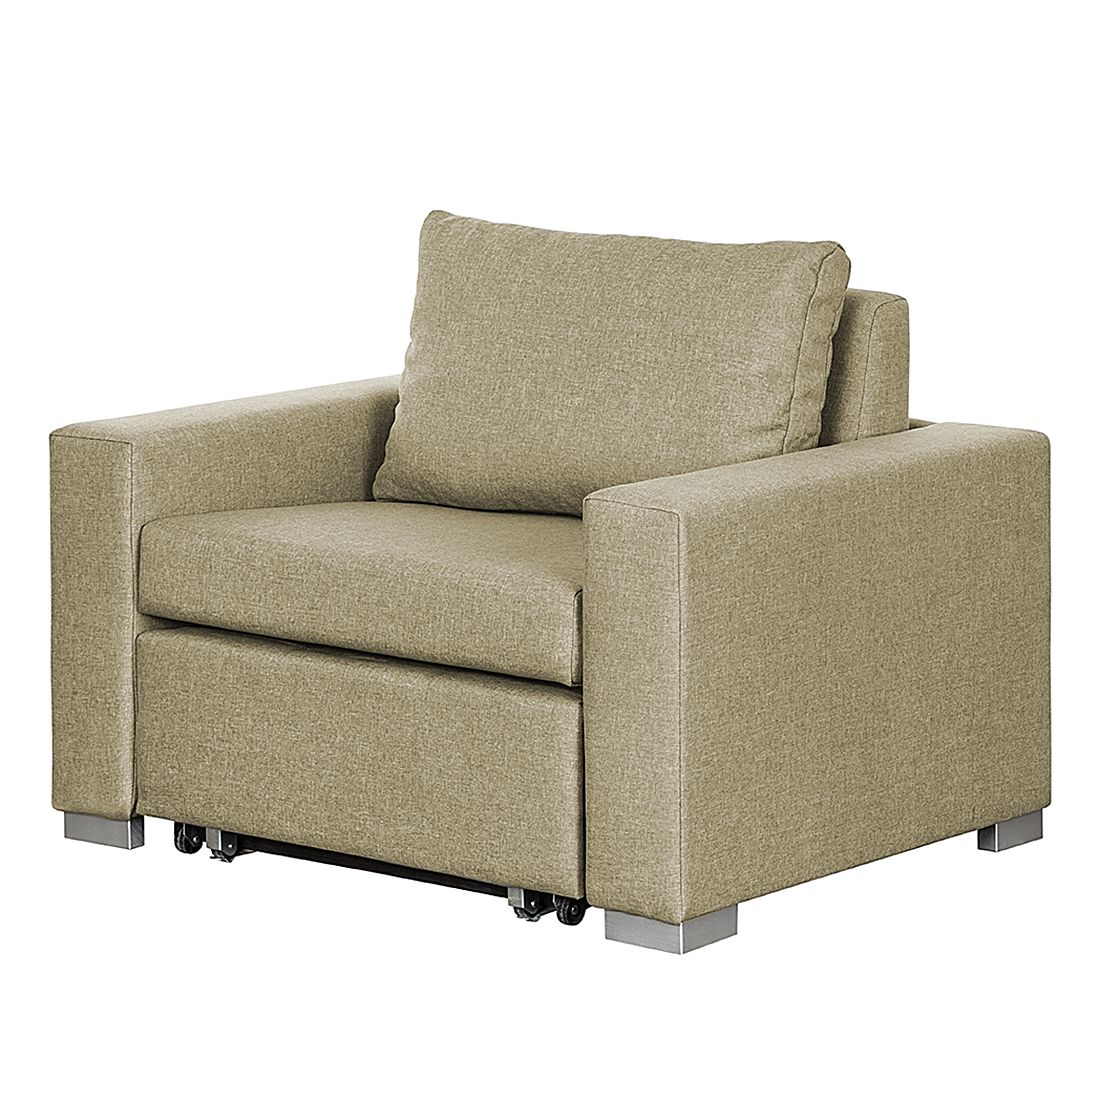 Schlafsessel Latina - Webstoff - Beige, roomscape